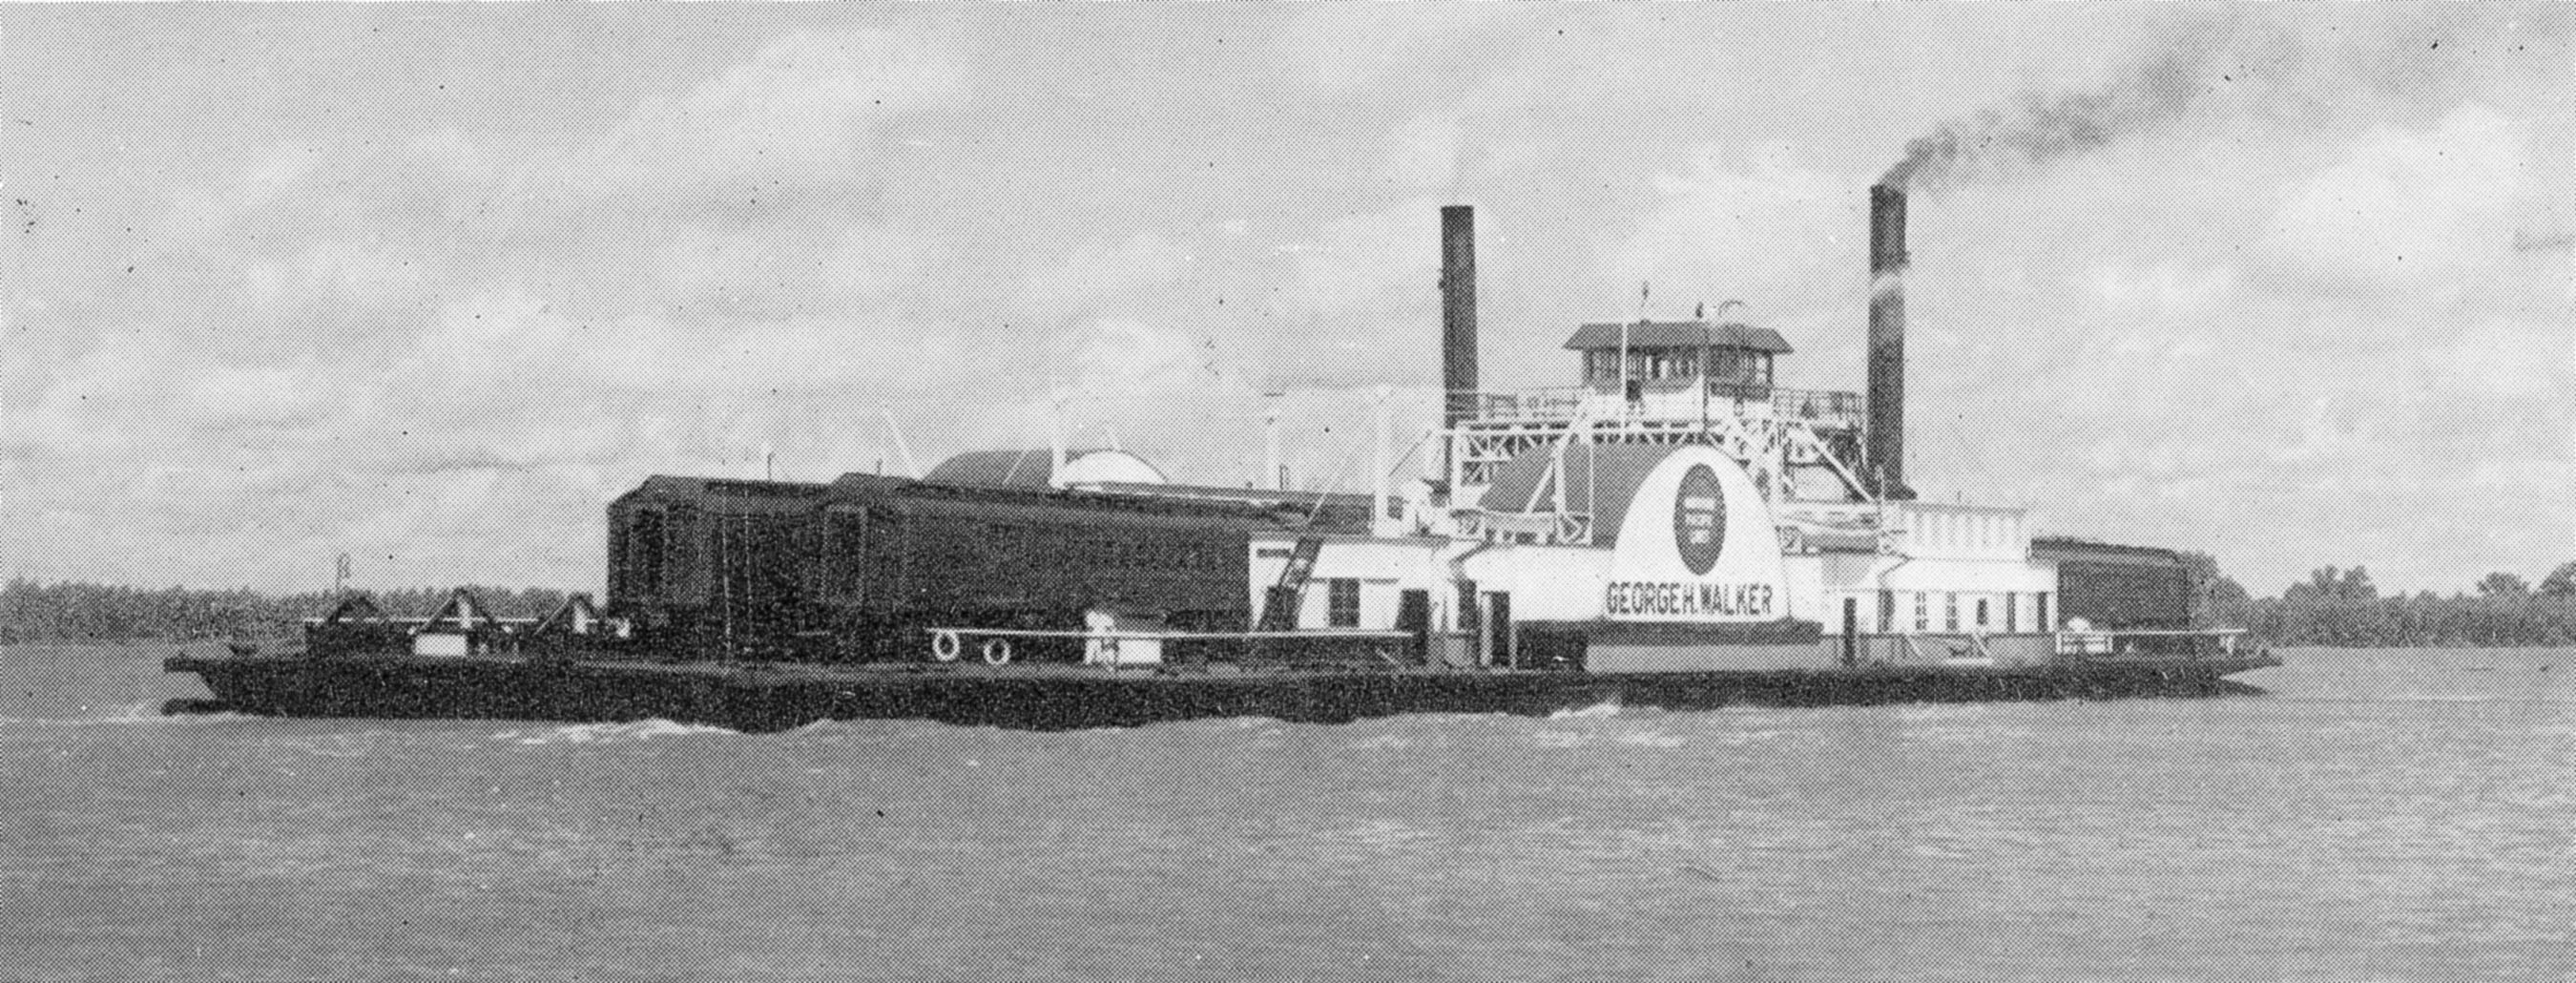 The steam ferry George Herbert Walker operated on the Lower Mississippi River between Baton Rouge and Anchorage, La.